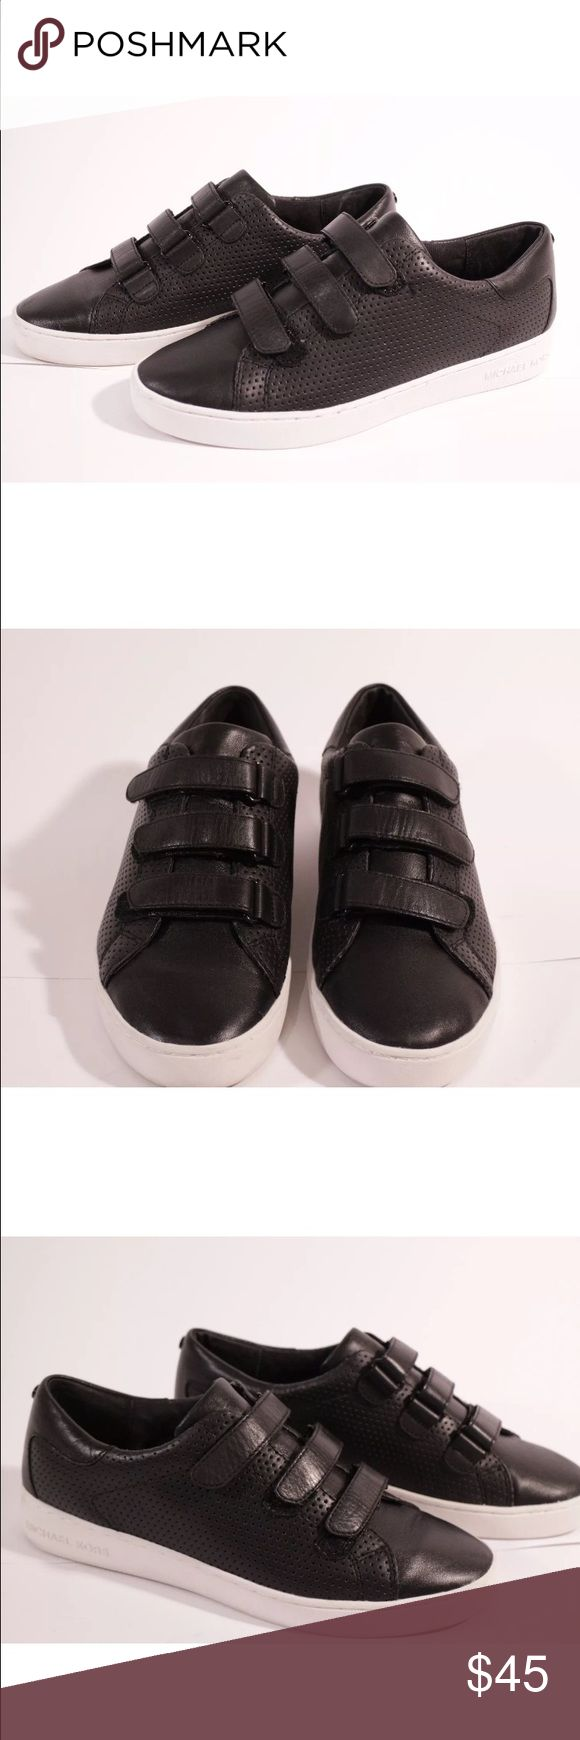 Michael Kors black leather sneakers In excellent condition. Authentic, genuine leather Michael Kors Shoes Sneakers